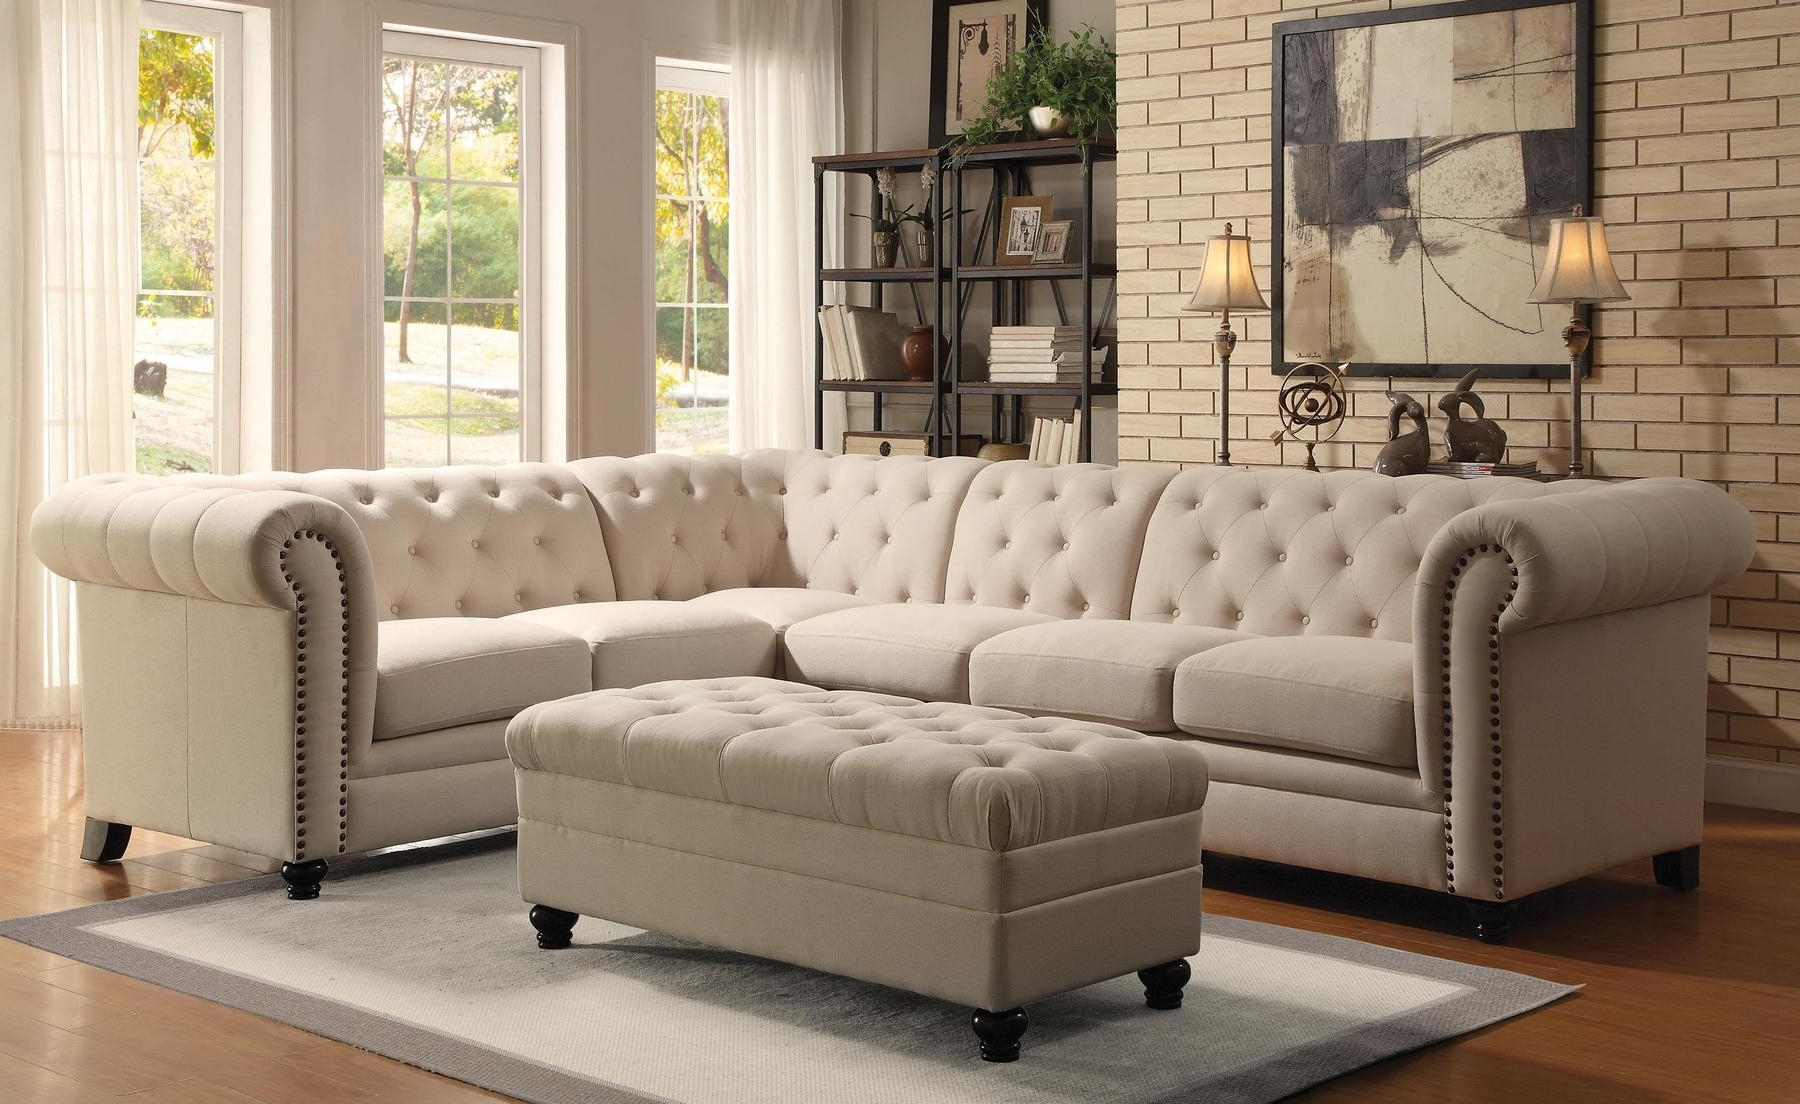 Latest Roy Oatmeal Sectional Sofa 500222 Coaster Furniture Sectional Intended For Good Quality Sectional Sofas (View 17 of 20)